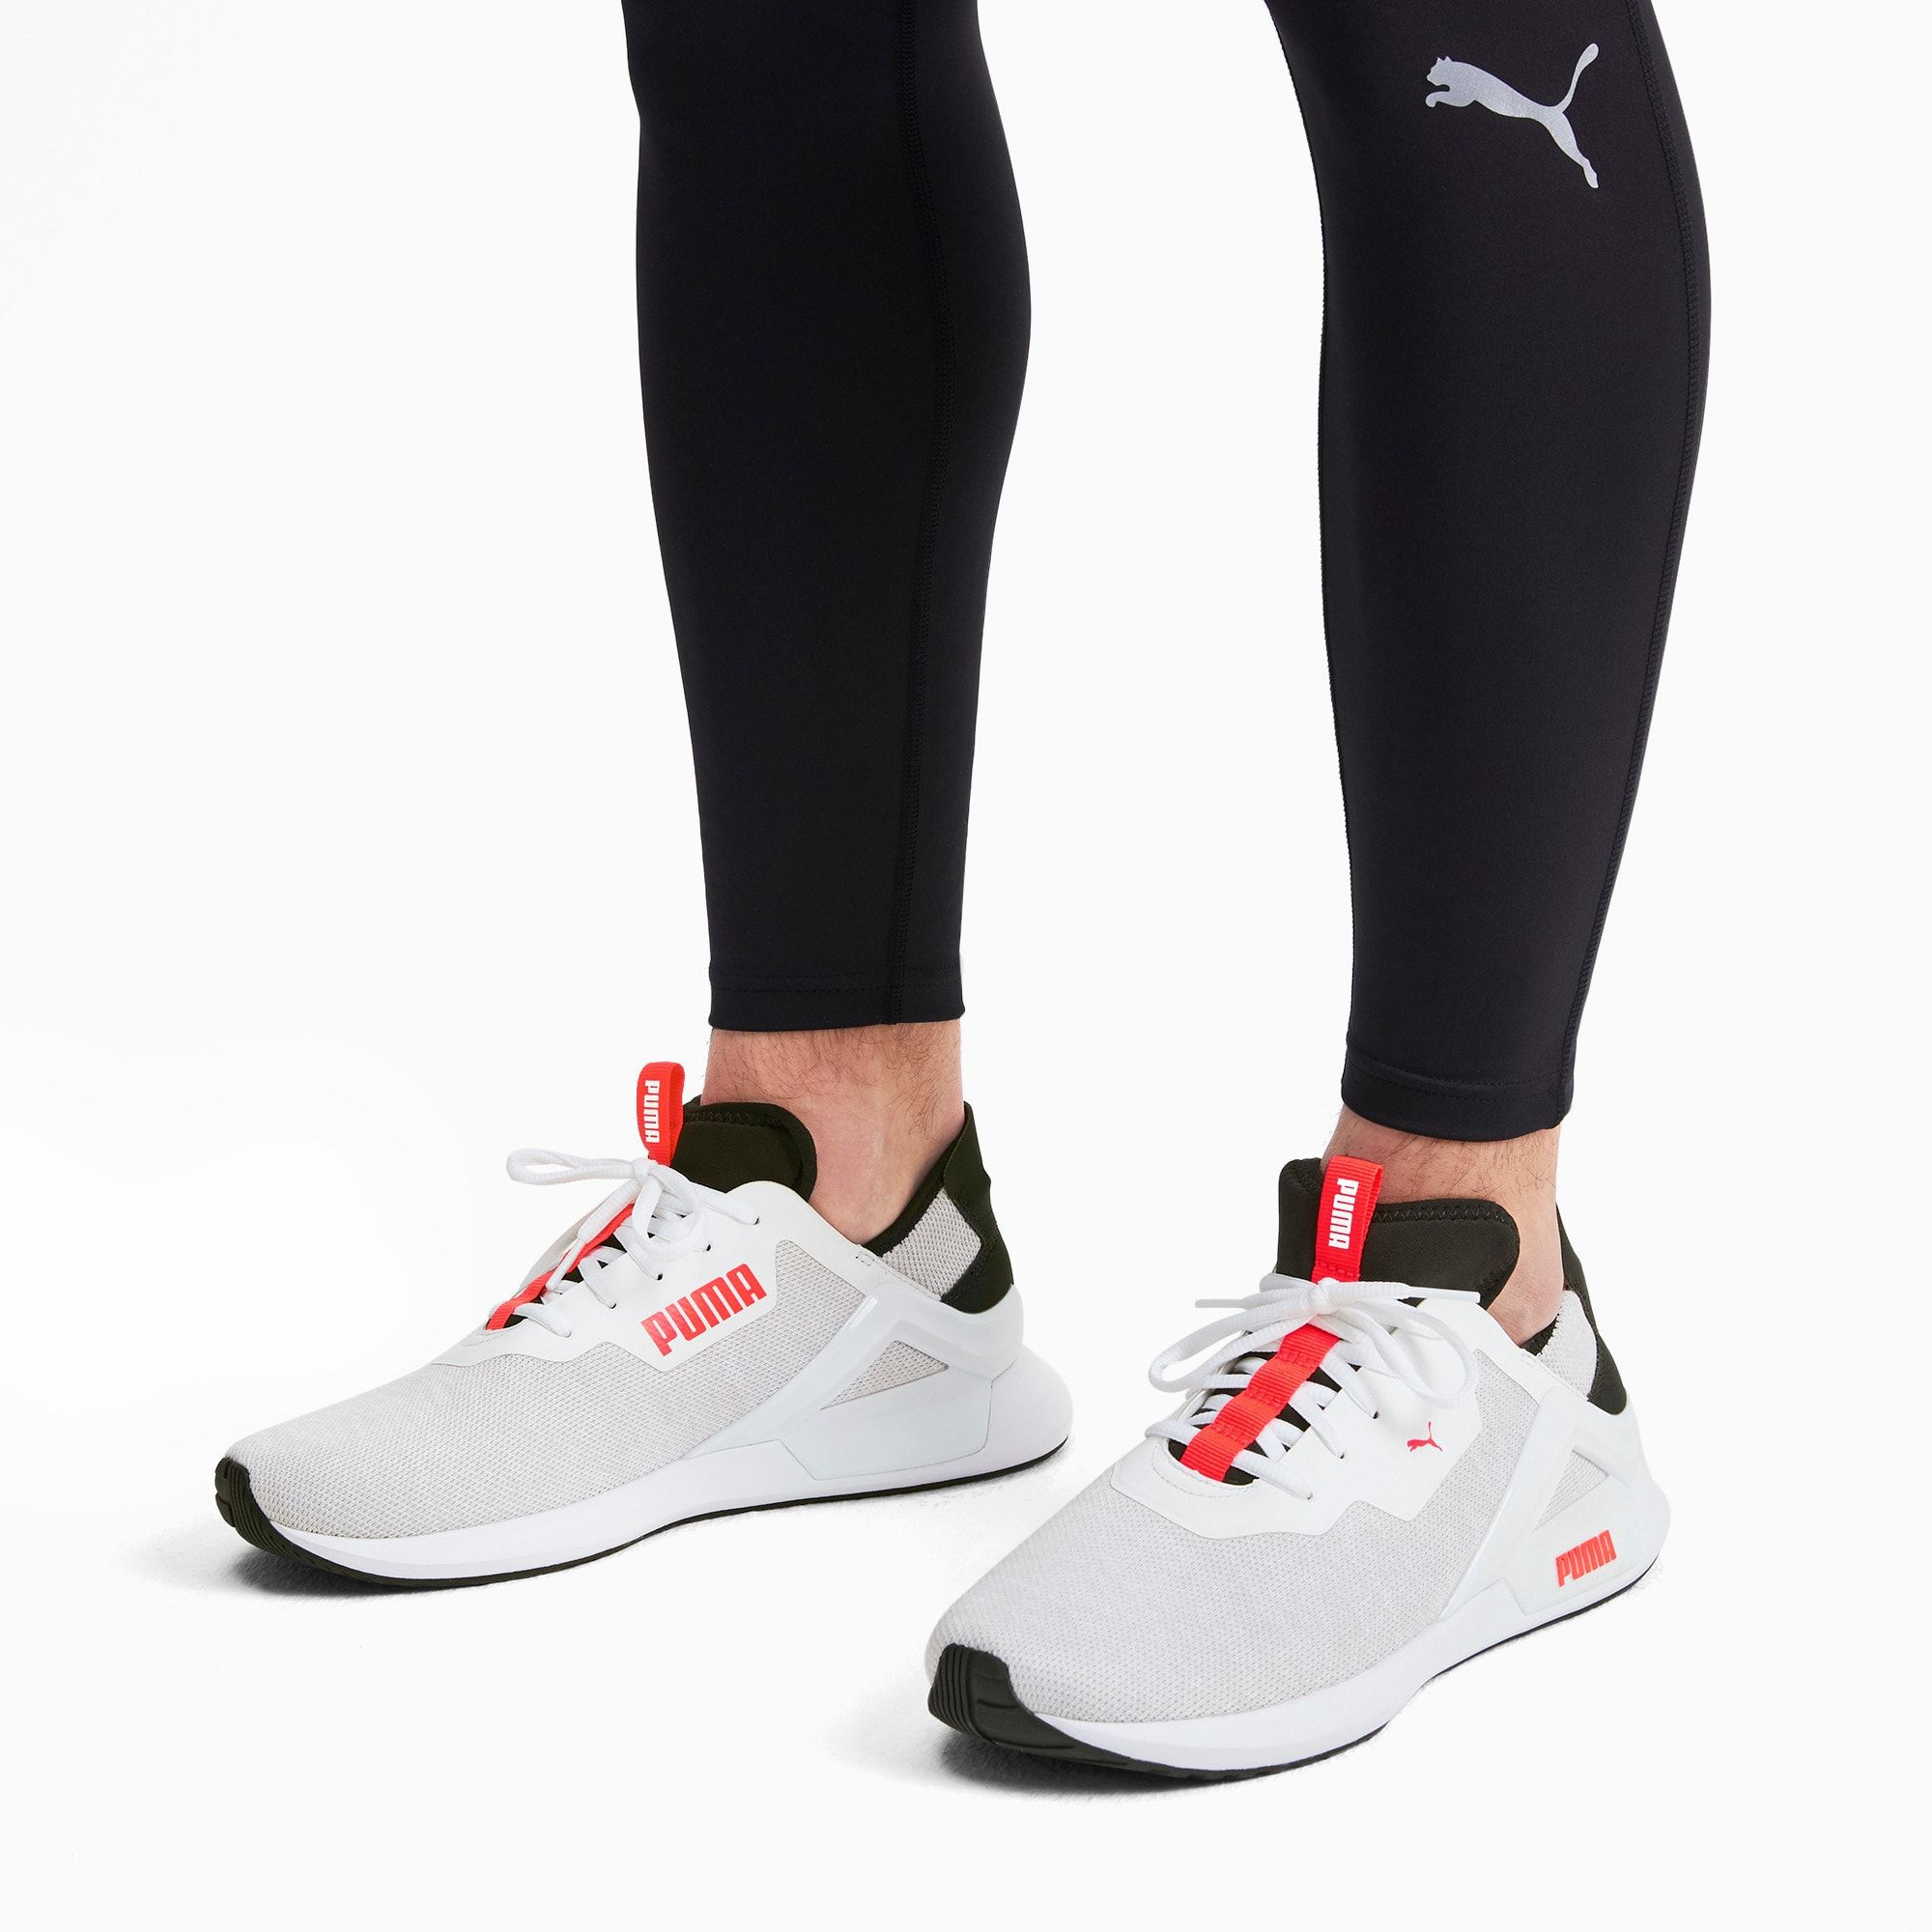 PUMA Rogue x Knit Men's Trainers in WhiteBlackRed size